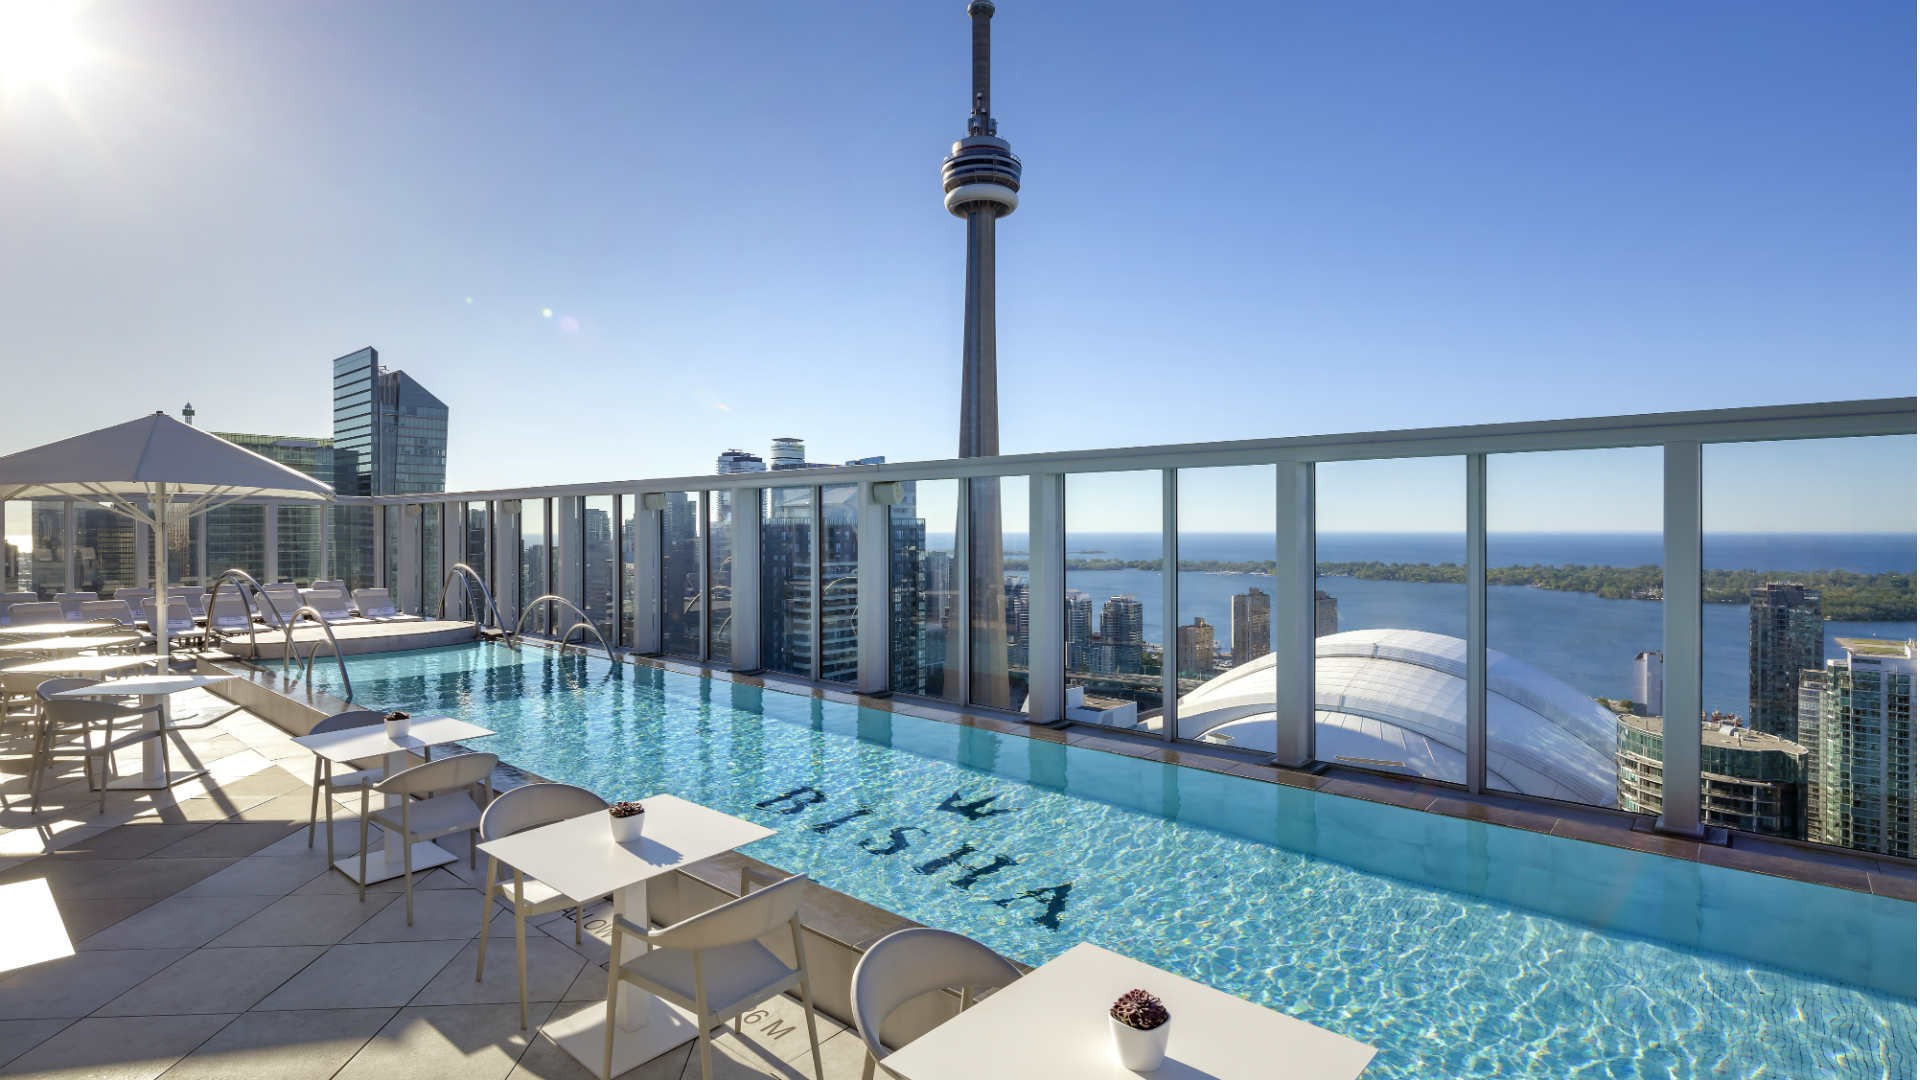 Best hotels Toronto staycation | The Bisha Hotel rooftop pool